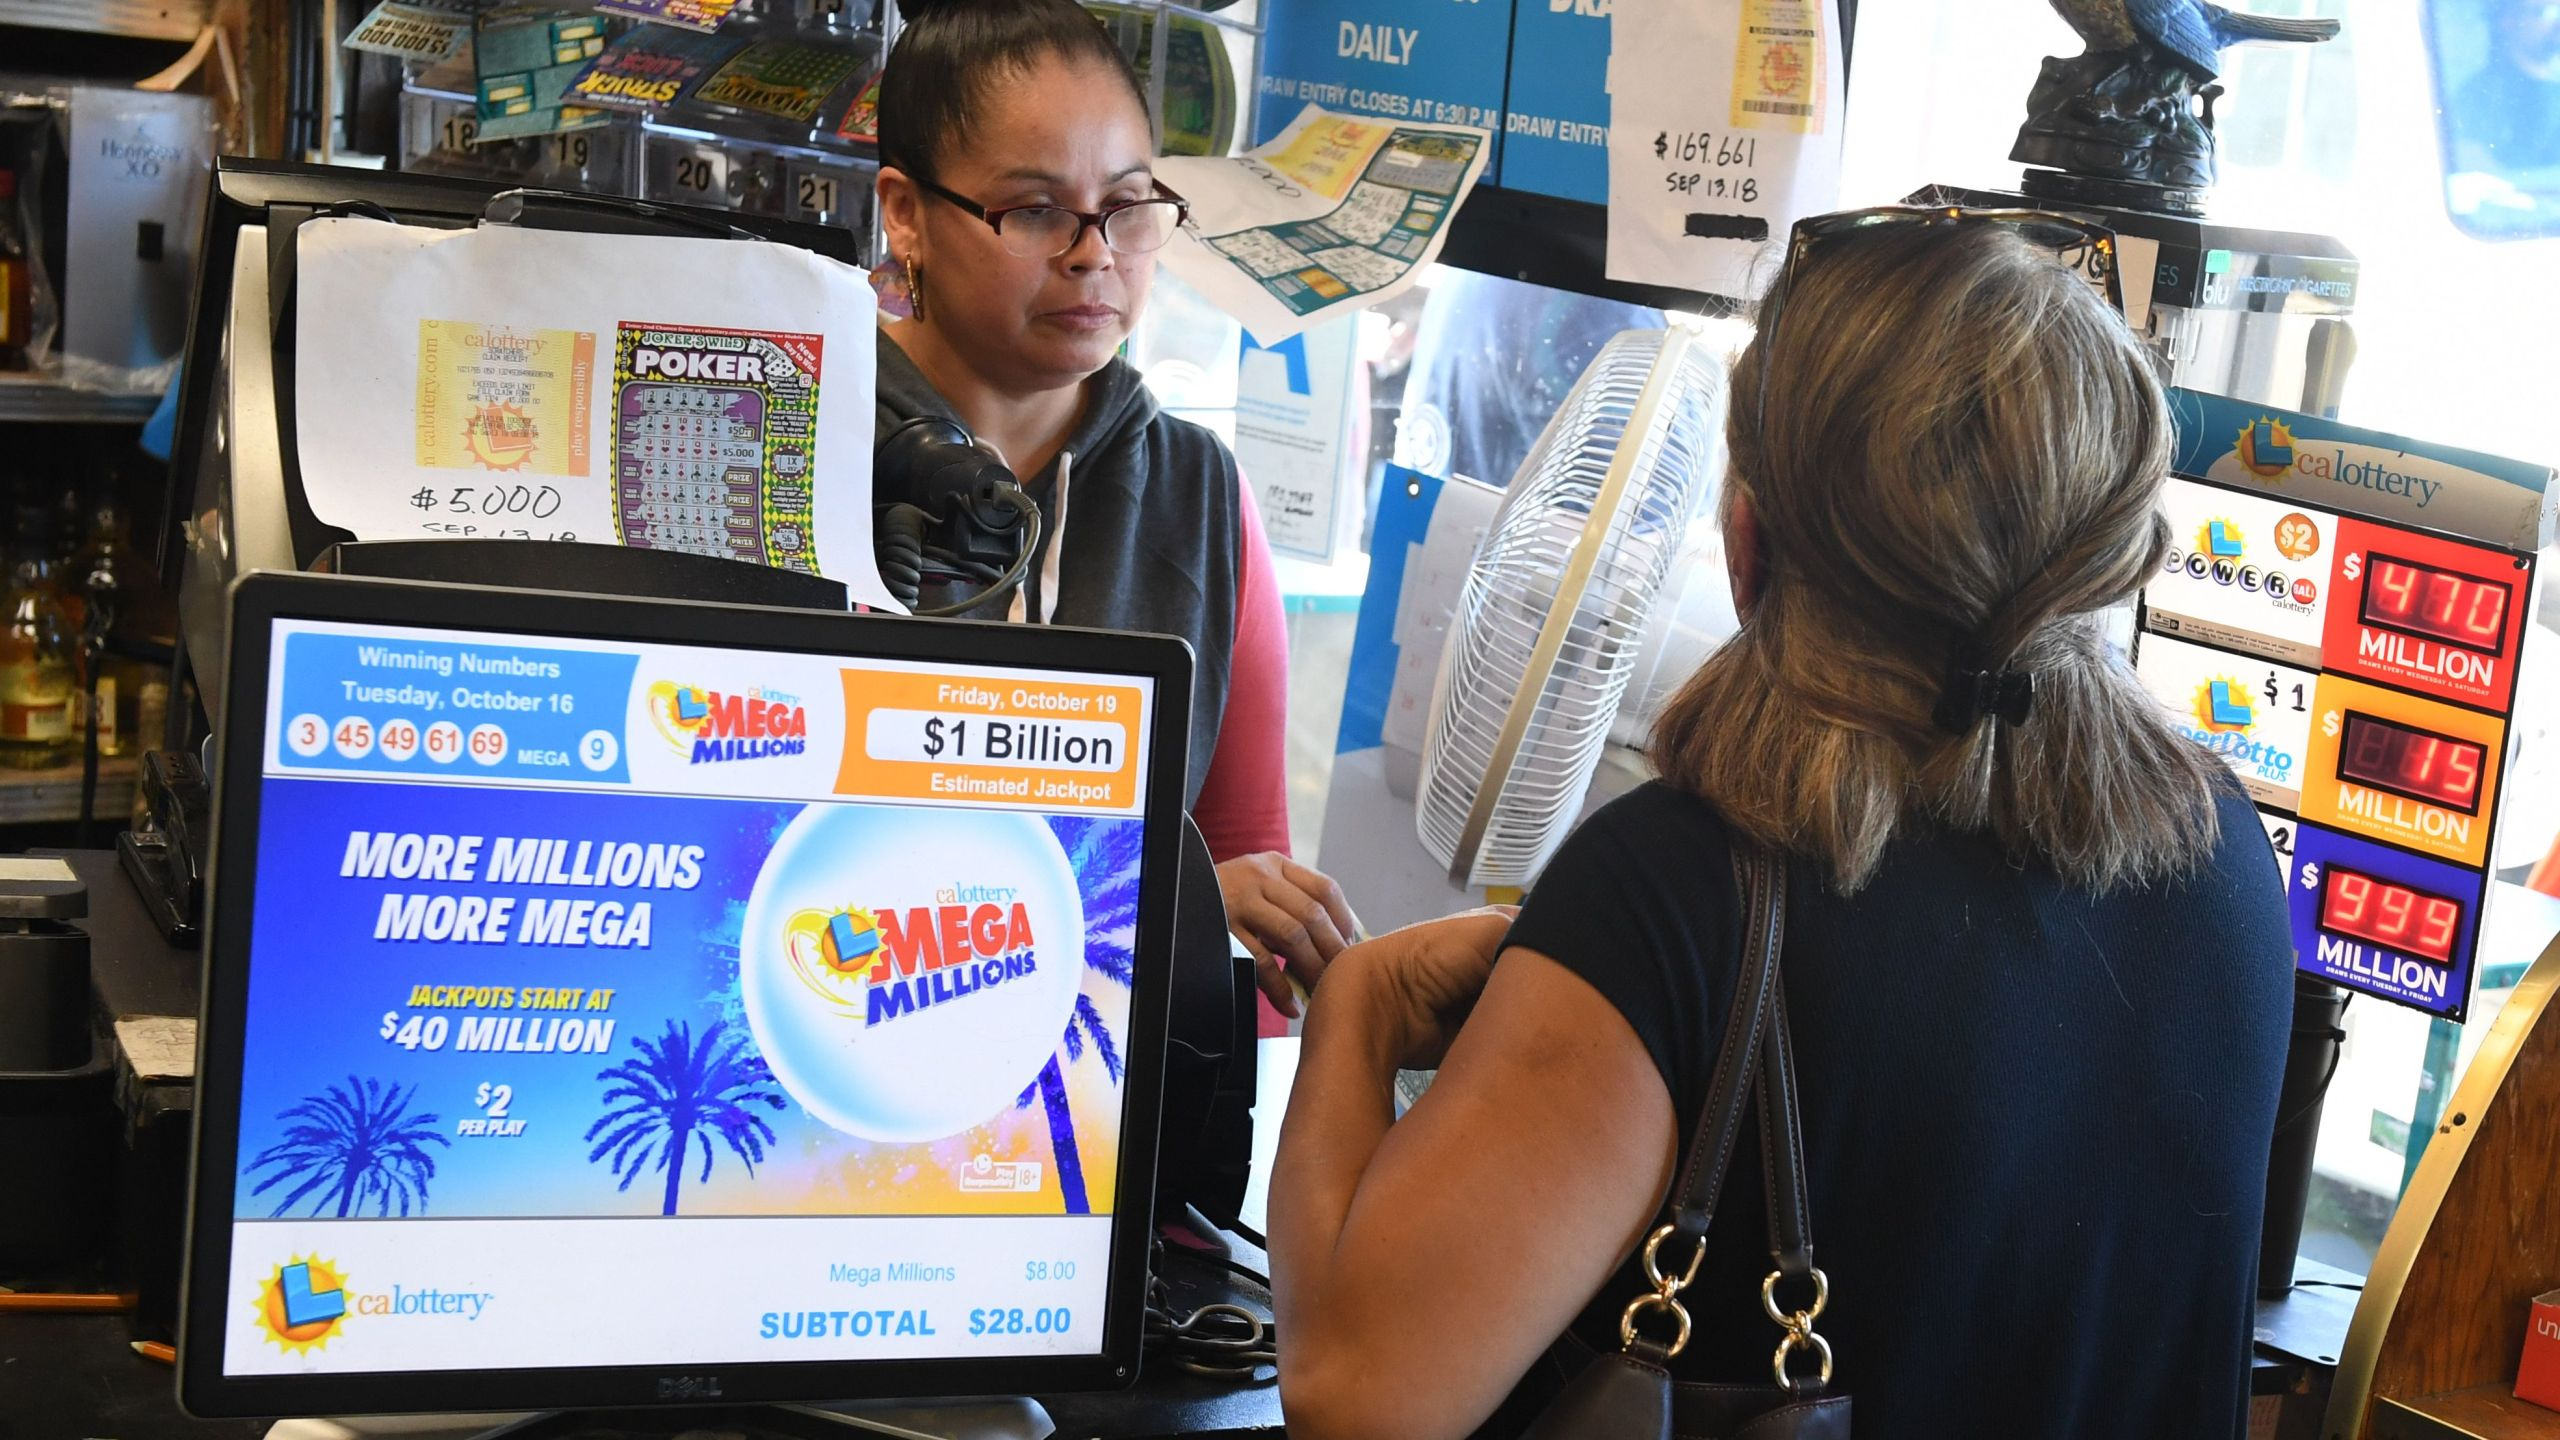 Customers buy Mega Millions tickets hours before the draw of the $1 billion jackpot at the Bluebird Liquor store in Torrance on Oct. 19, 2018. (Credit: MARK RALSTON/AFP/Getty Images)